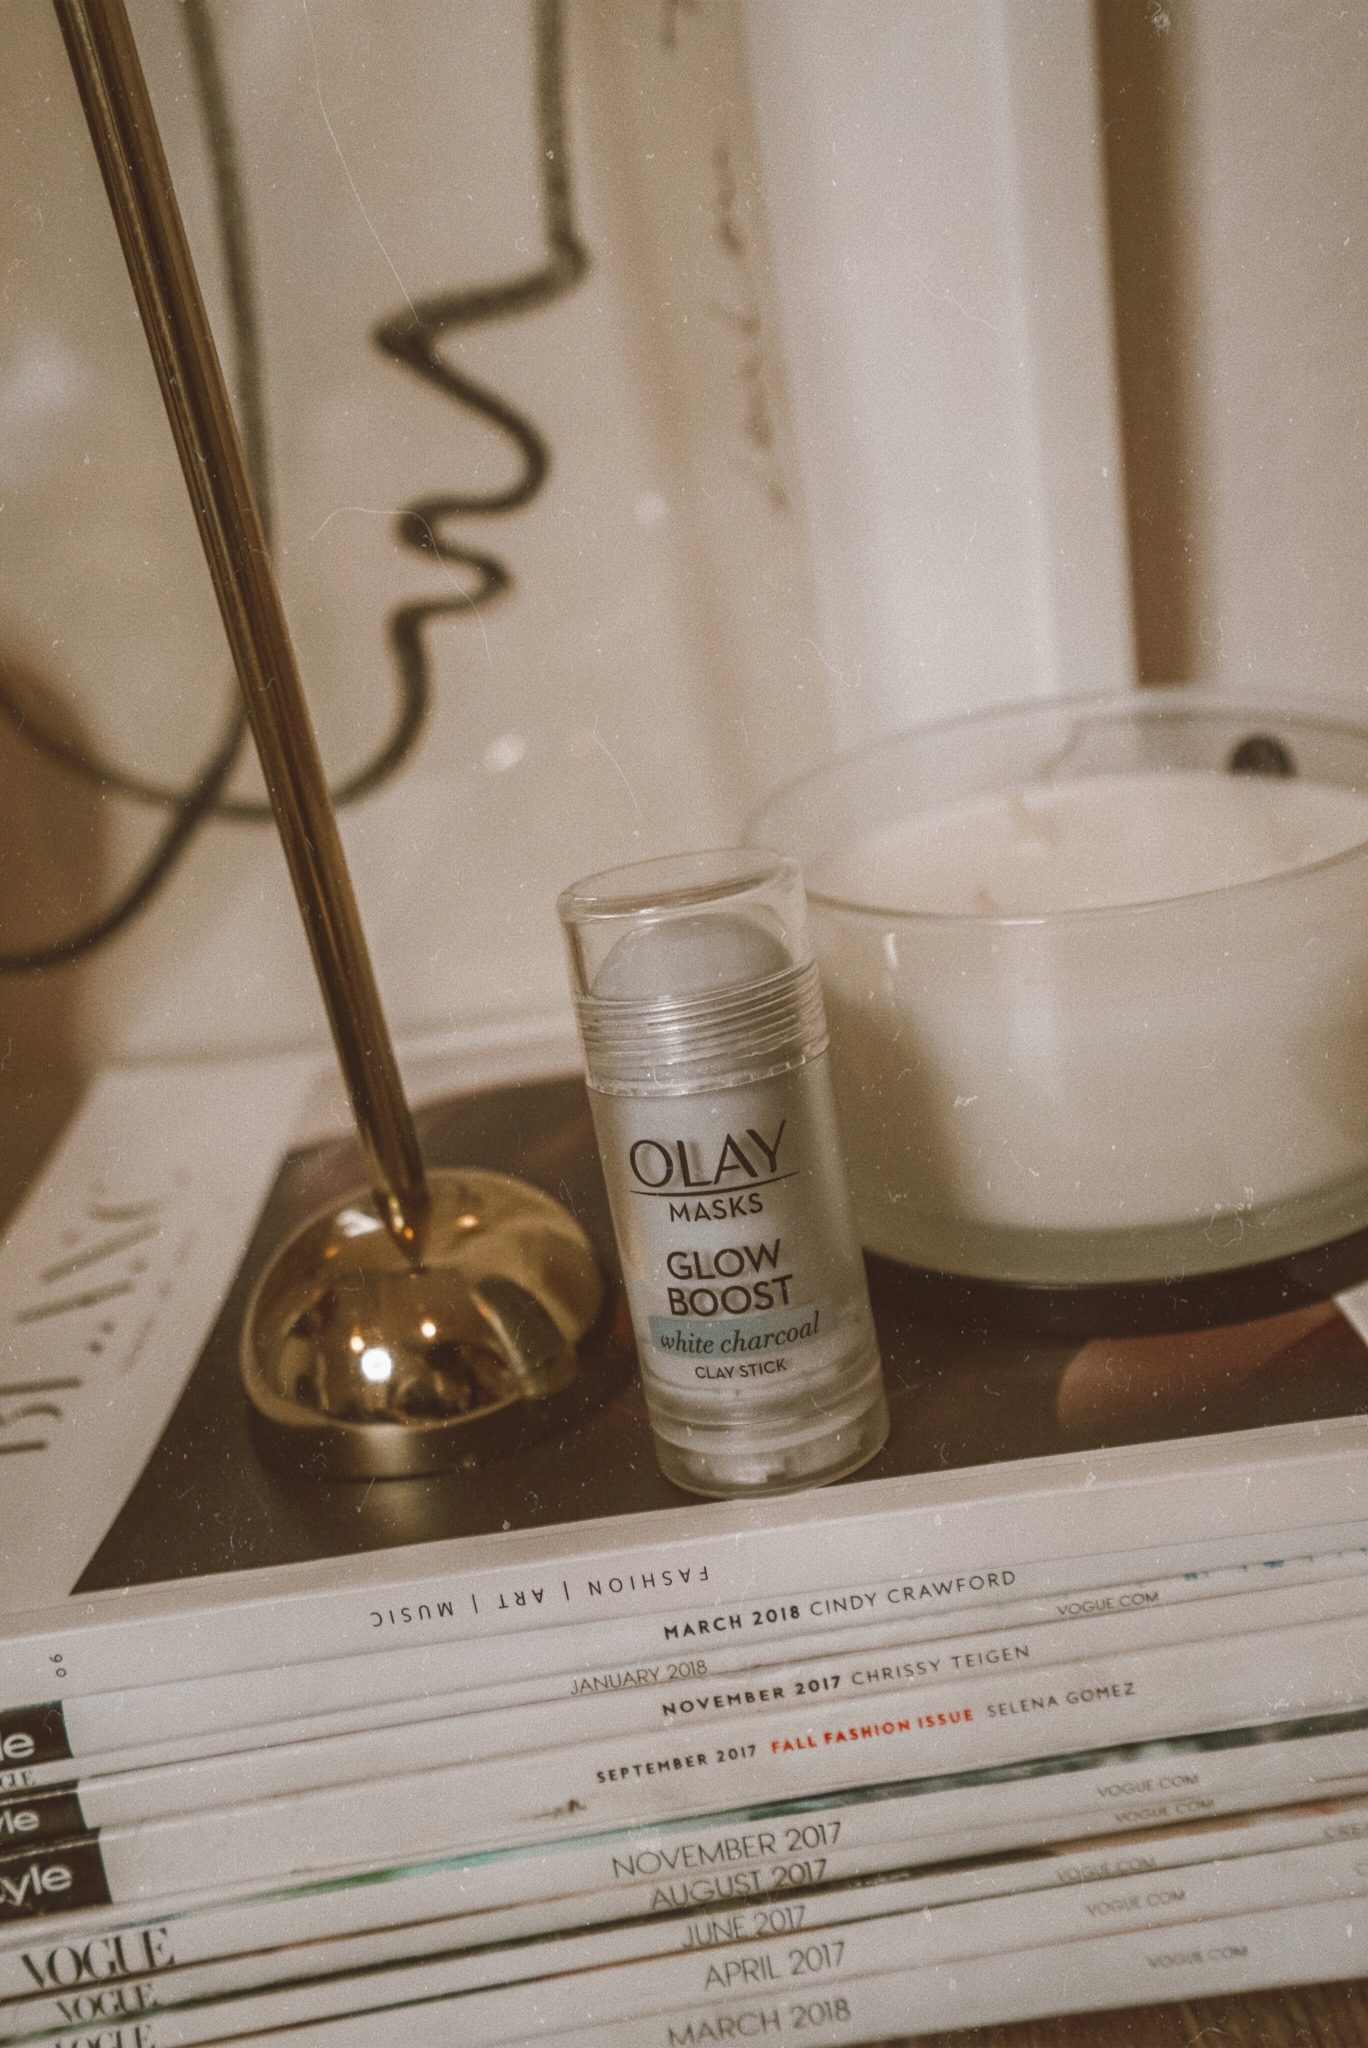 Olay Clay Stick Masks